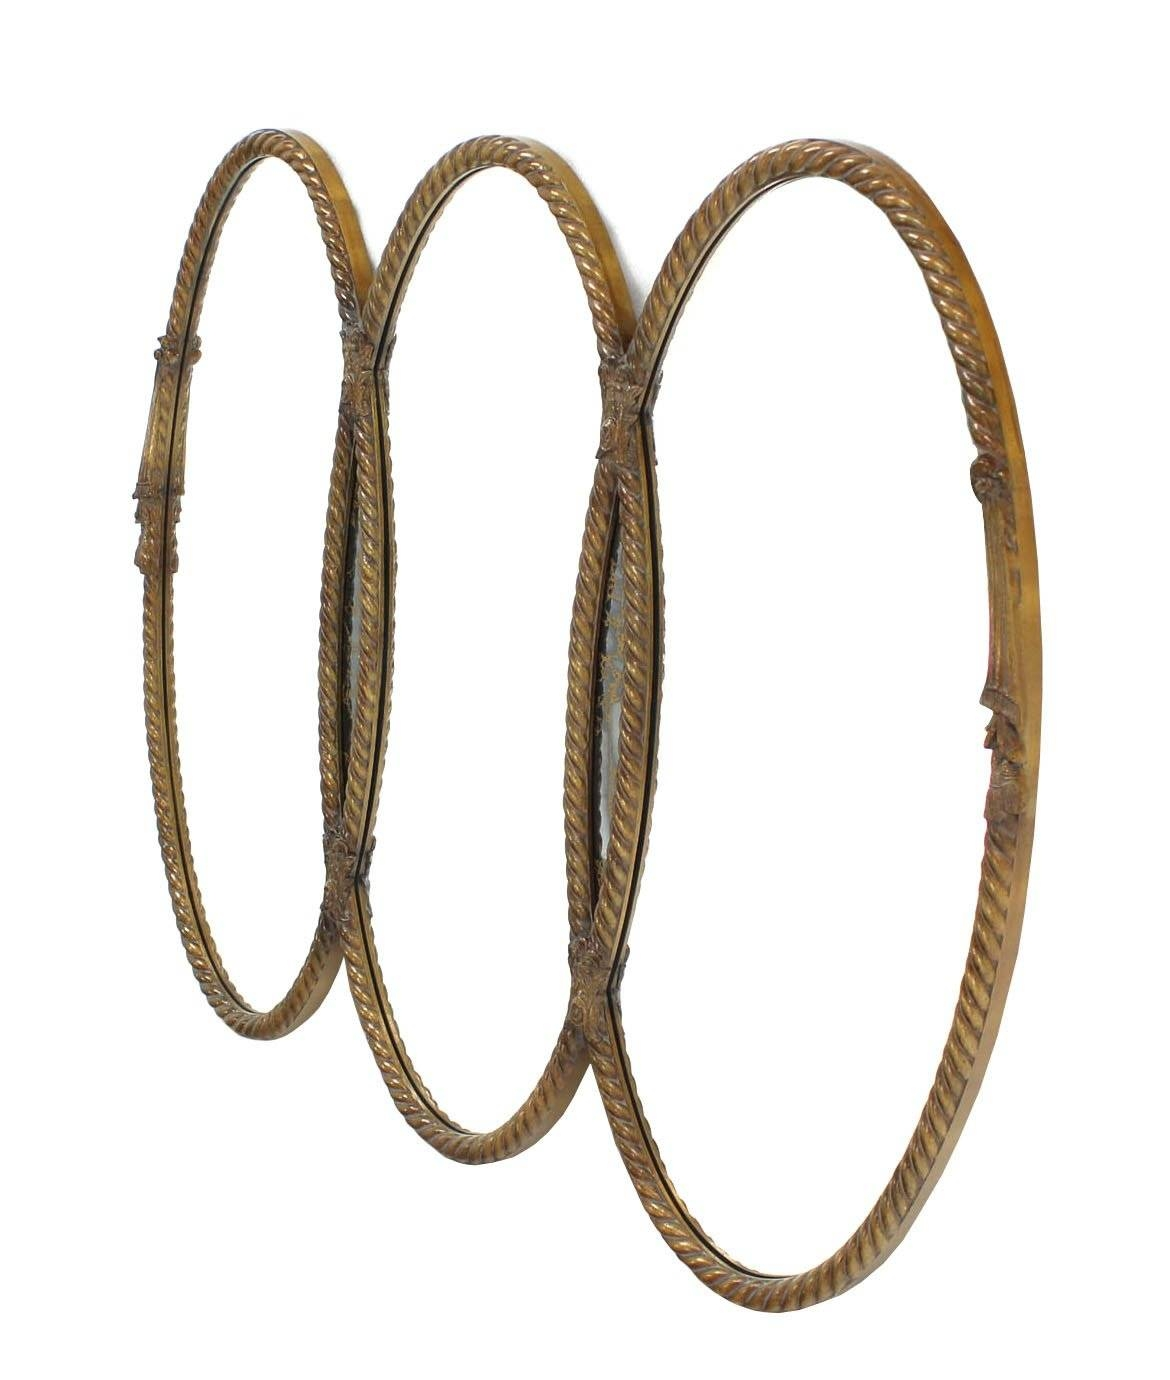 Mid-Century Modern Triple Oval Gold Mirror With Rope Edge Frame intended for Triple Oval Mirrors (Image 14 of 25)